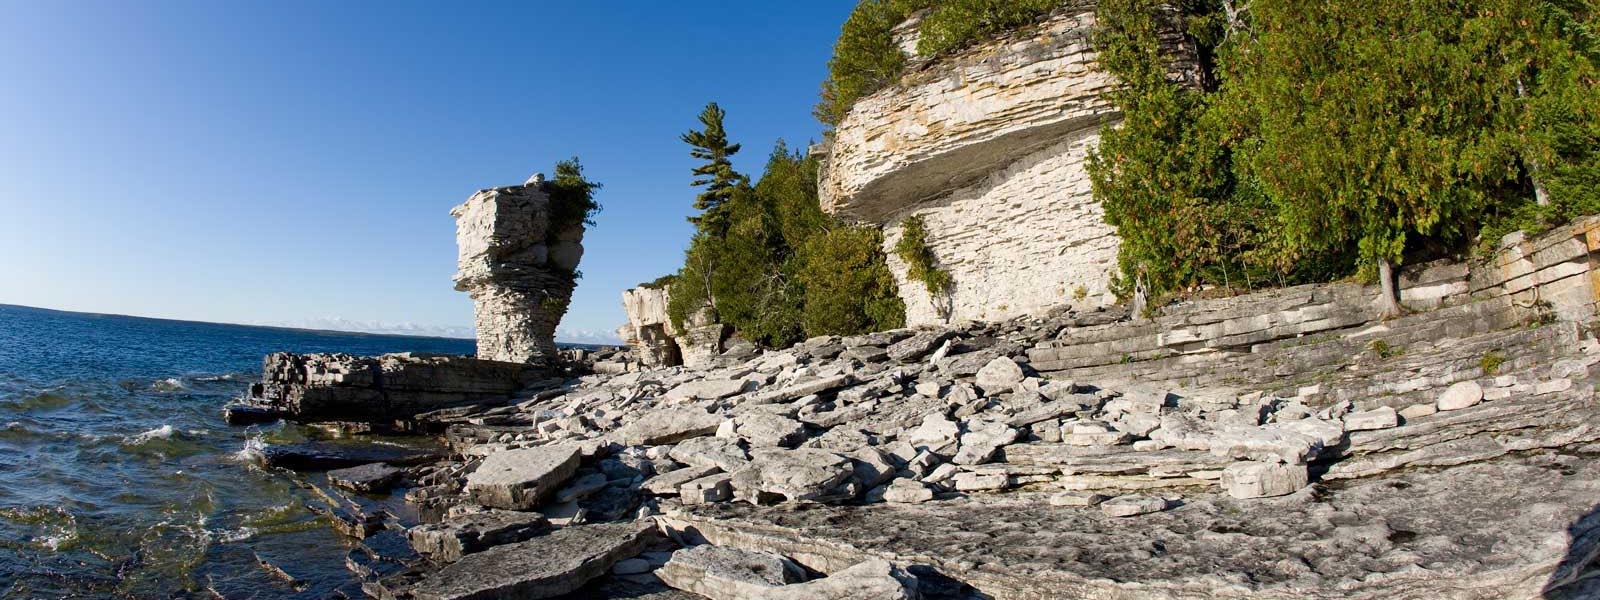 Flowerpot Island Sea Stacks